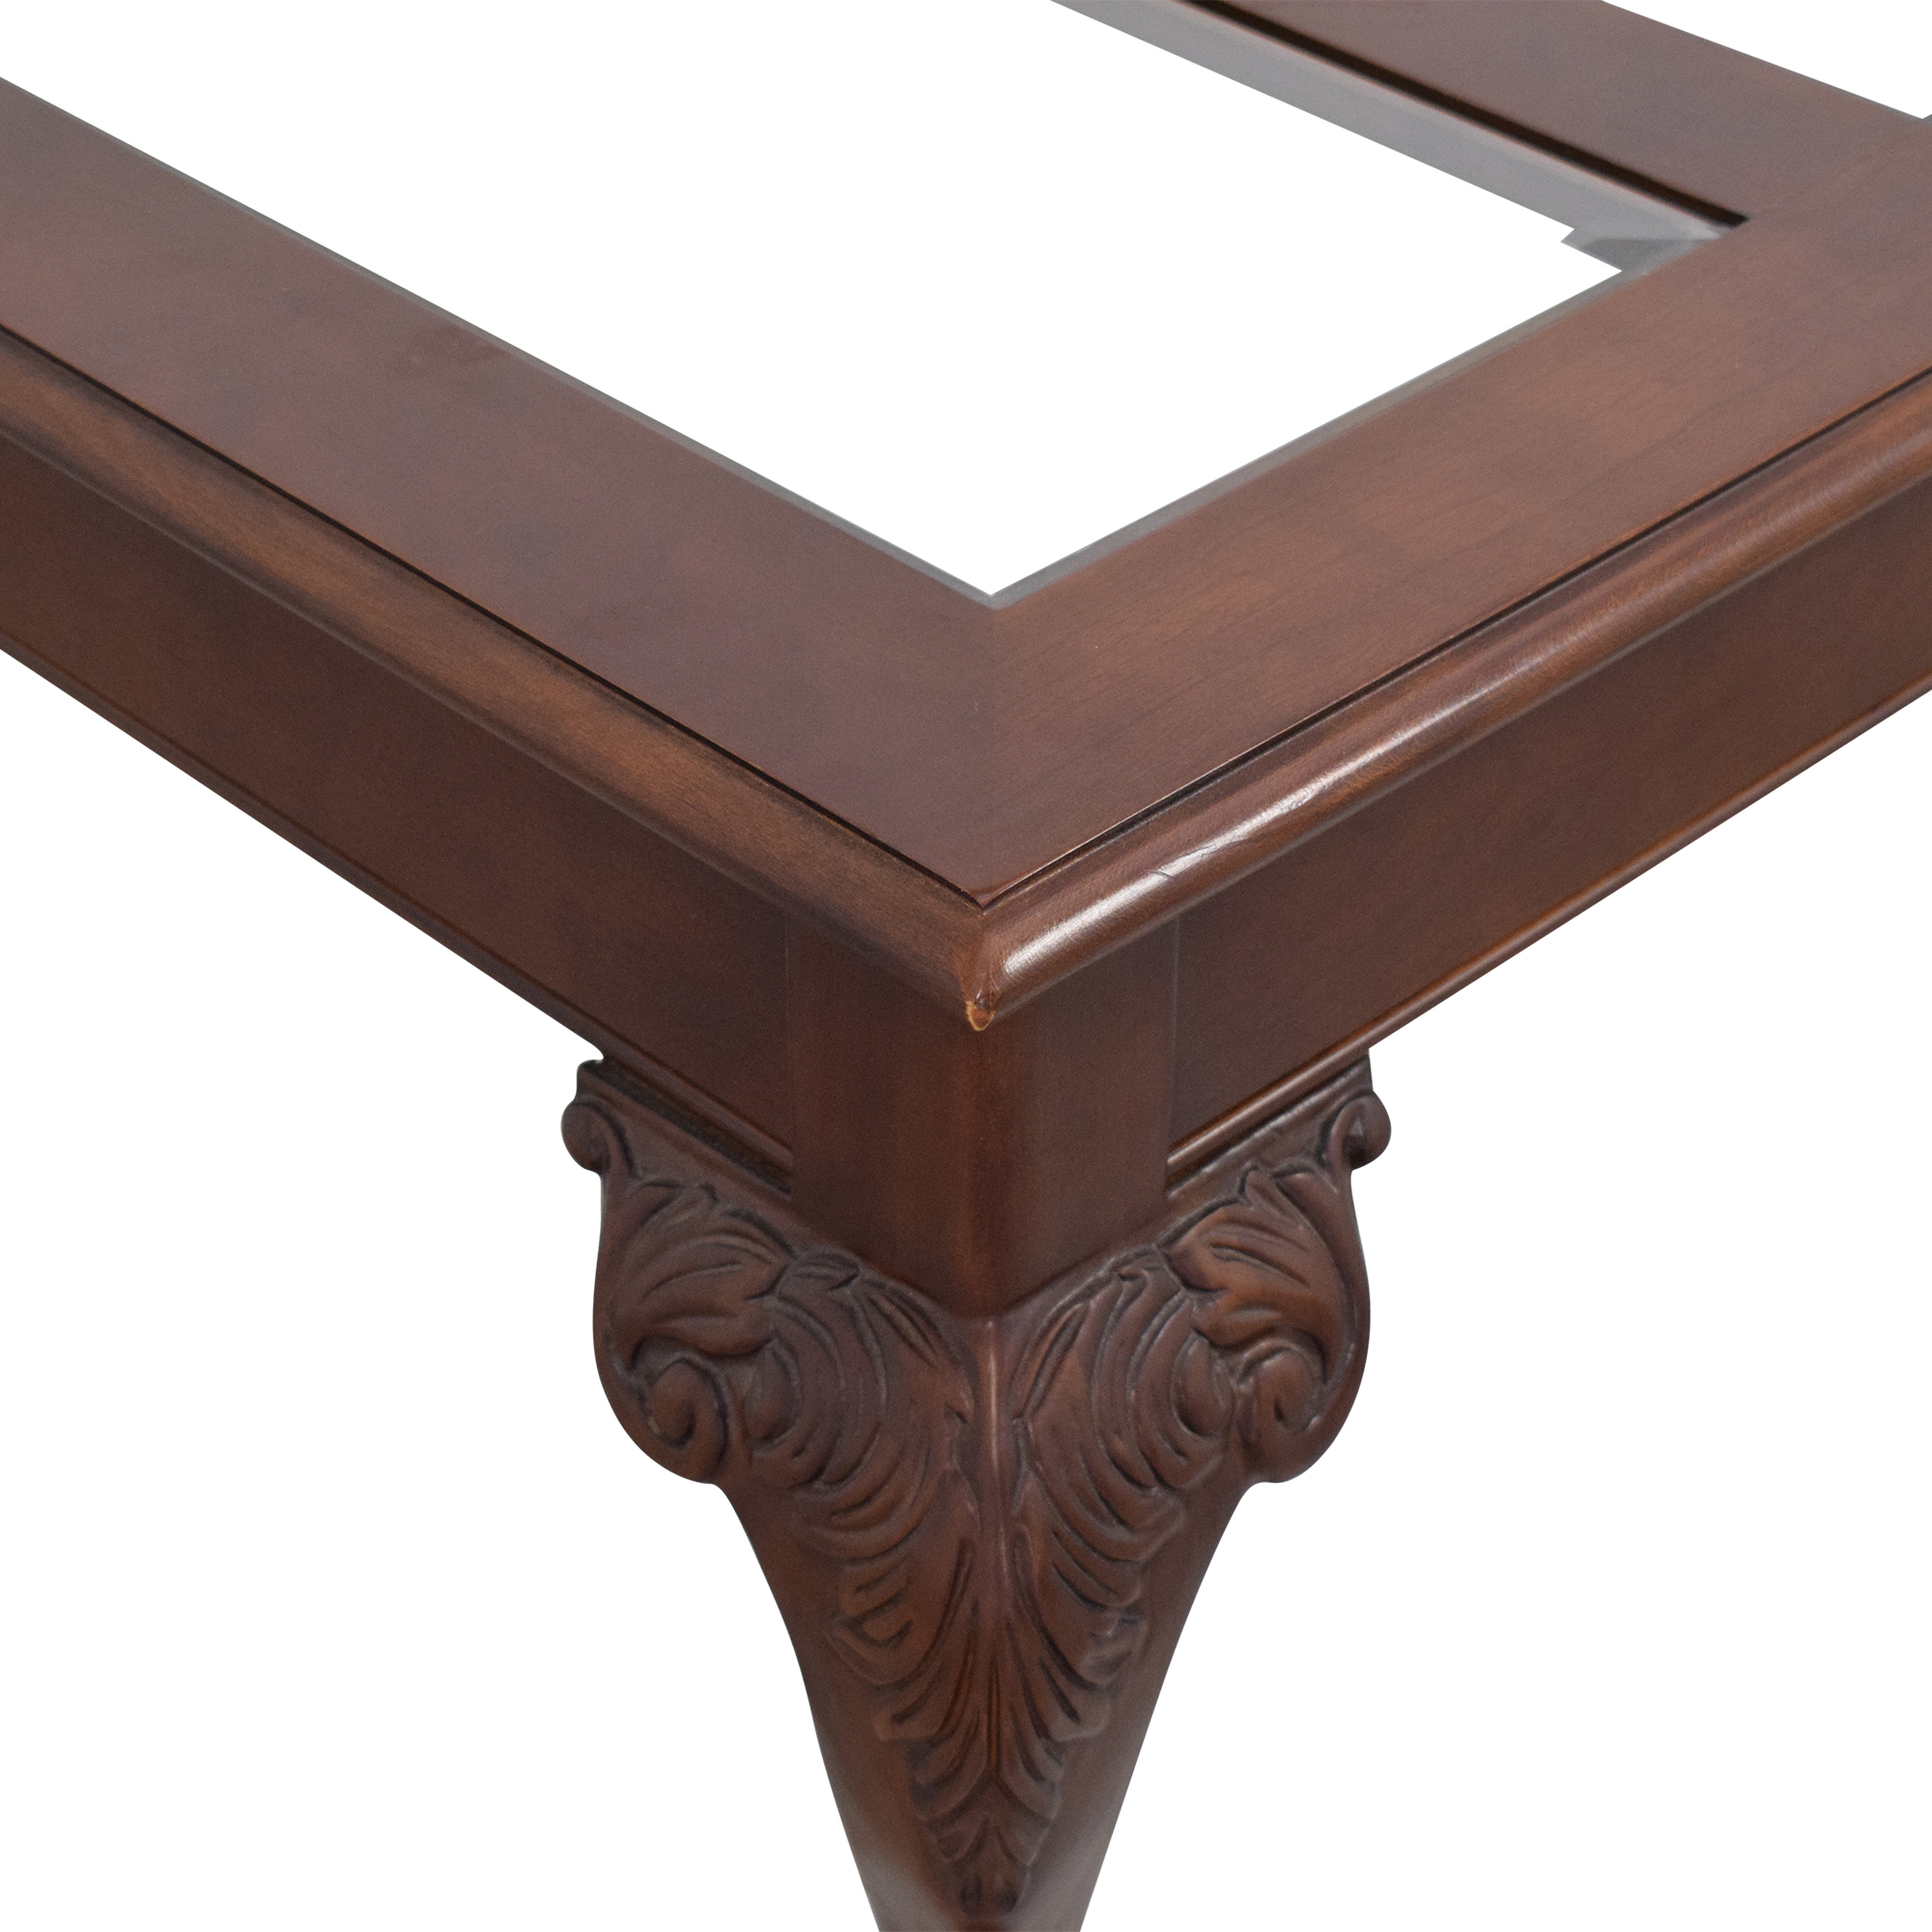 Drexel Heritage Drexel Heritage Coffee Table second hand